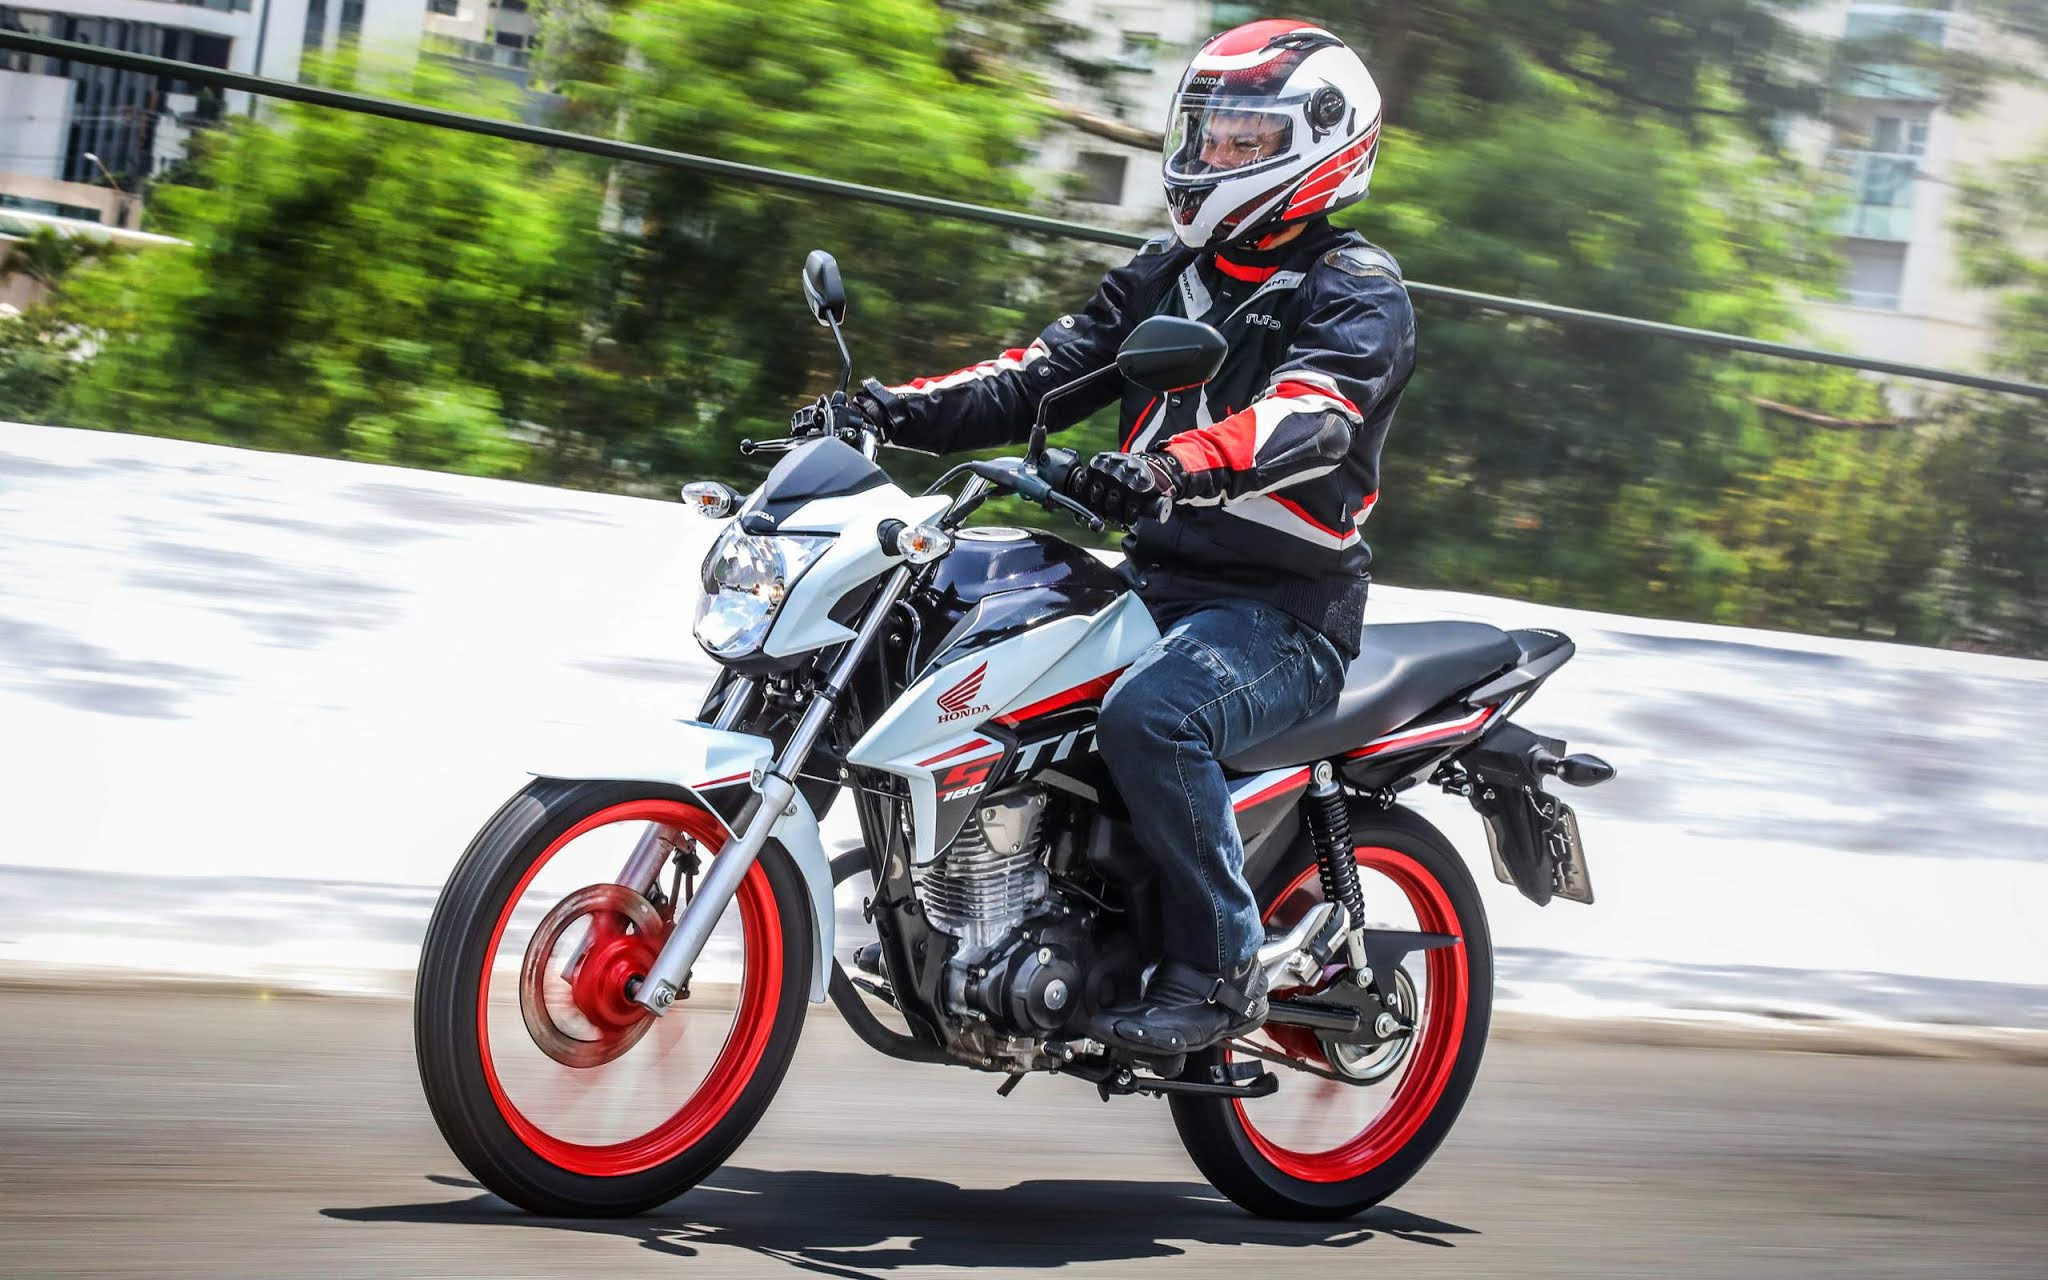 As motos mais vendidas do Brasil em abril de 2021